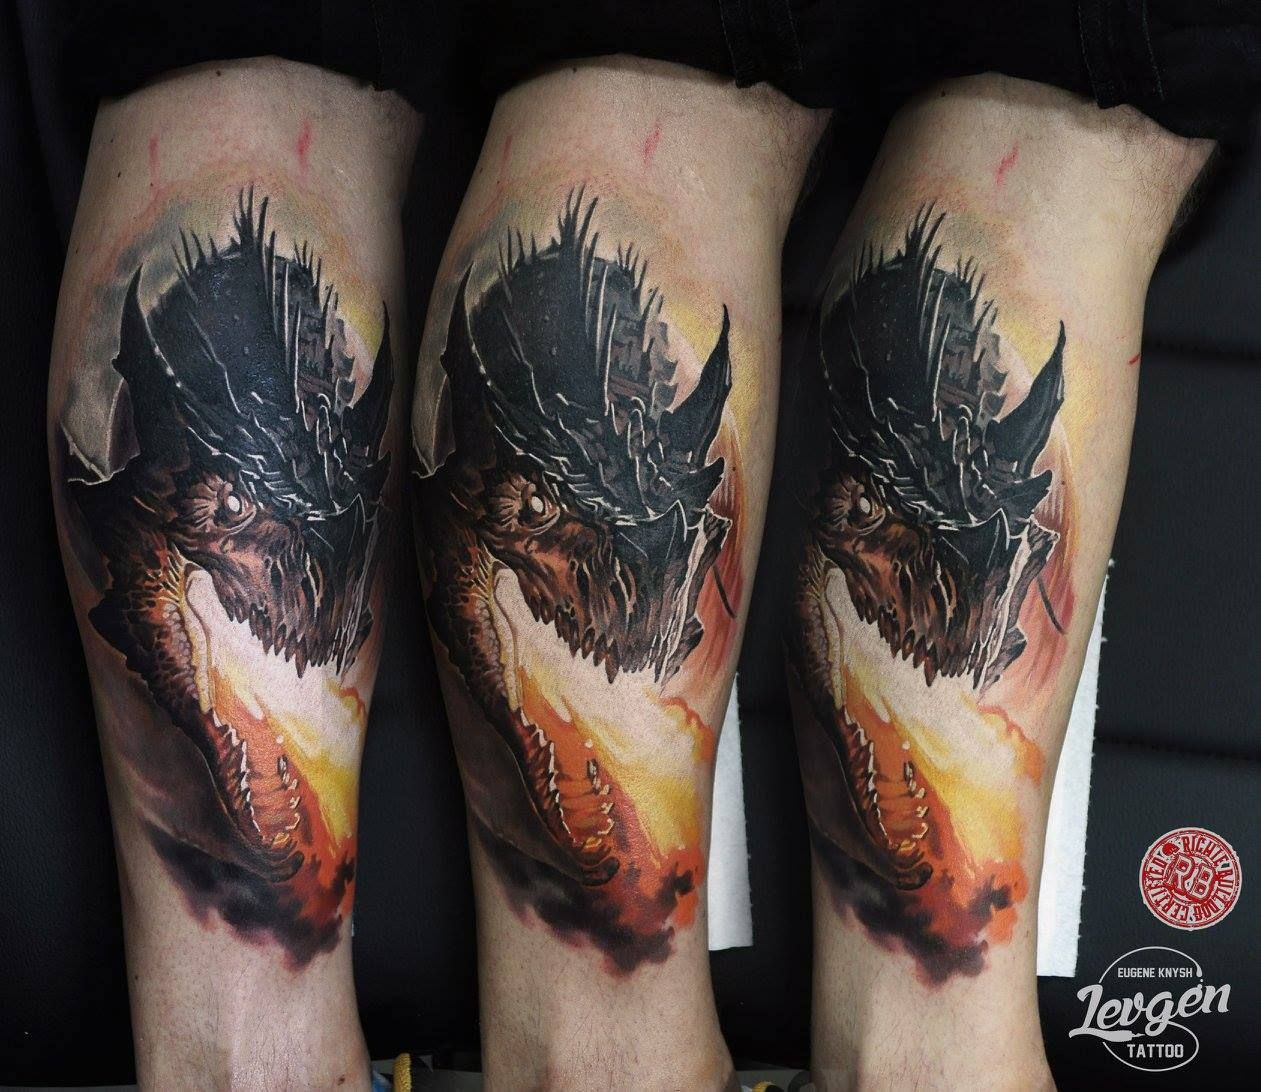 Levgen Mythical Creatures Tattoos Tattoo Artists